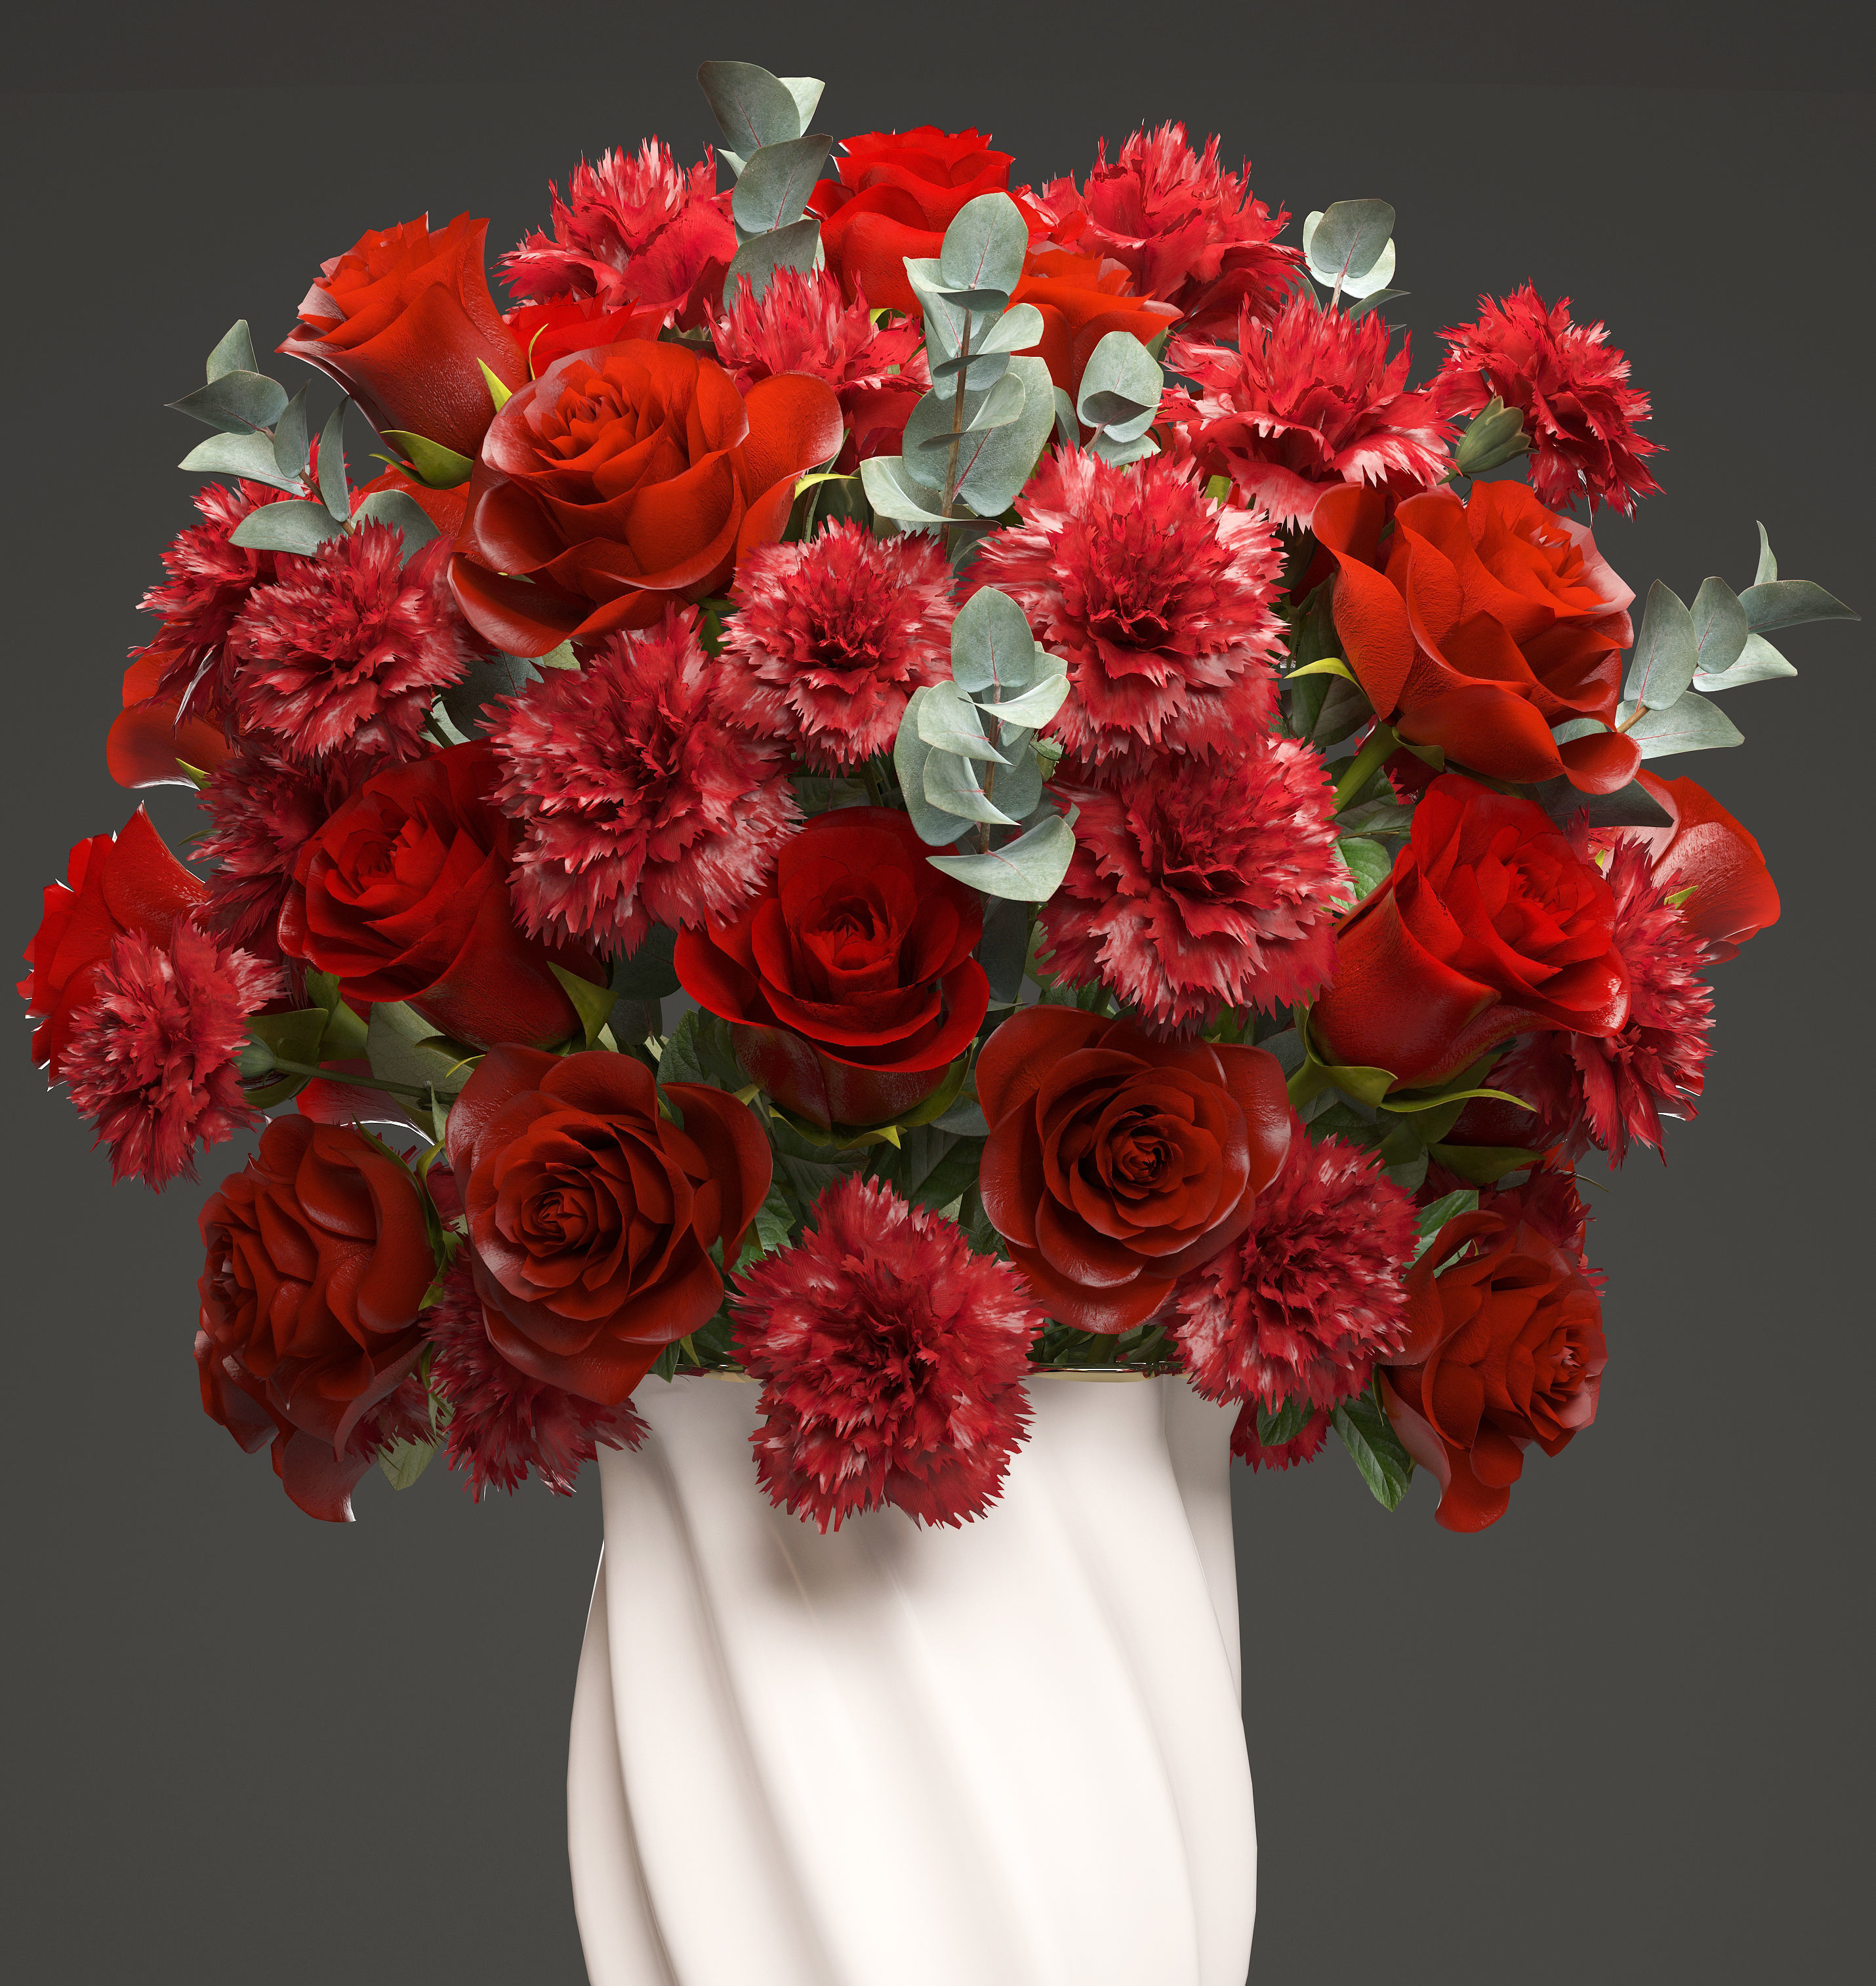 Bouquet of red roses 3D | CGTrader